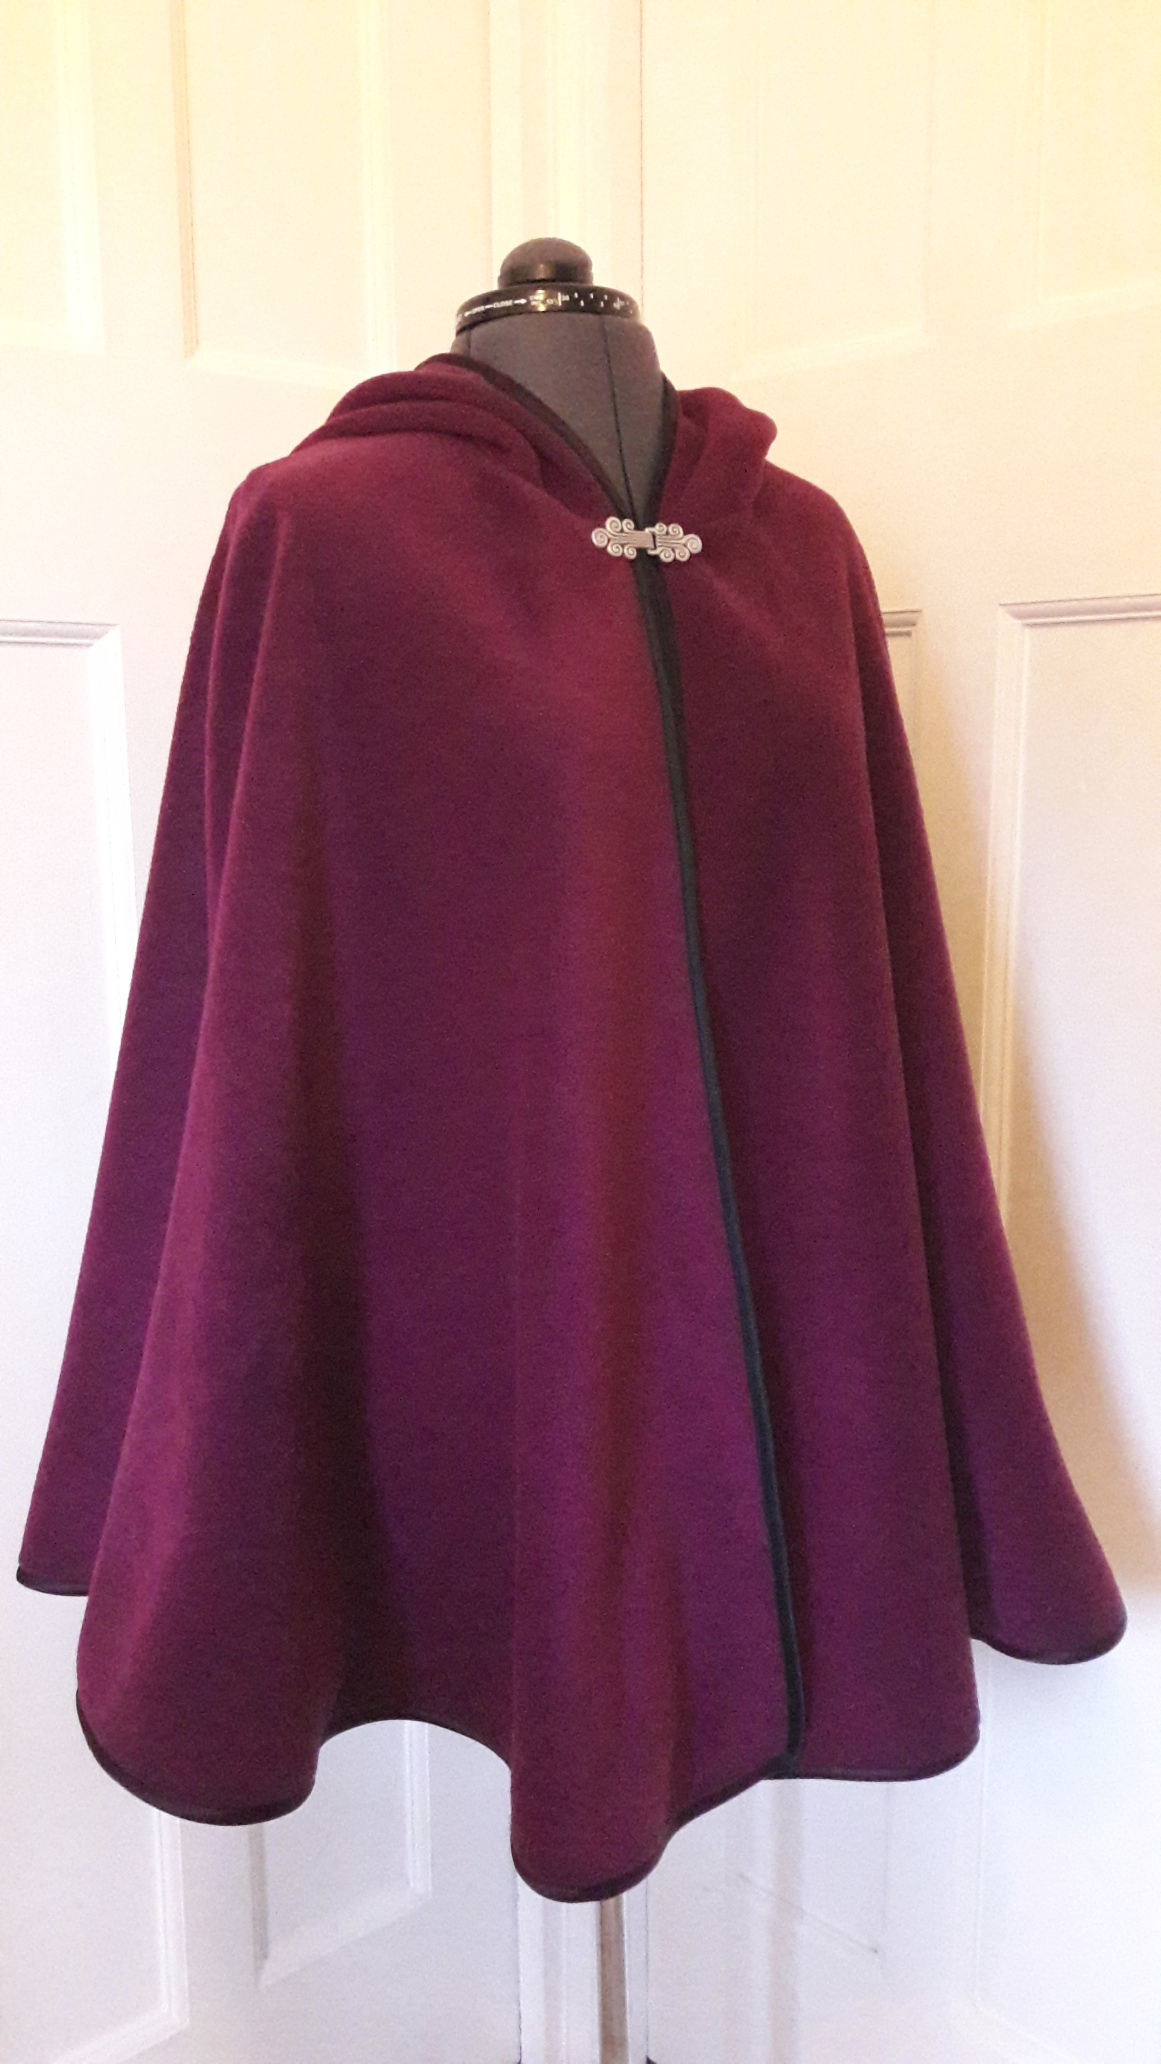 Cape edged with black satin binding - rounded hood - choice of colours - made to order